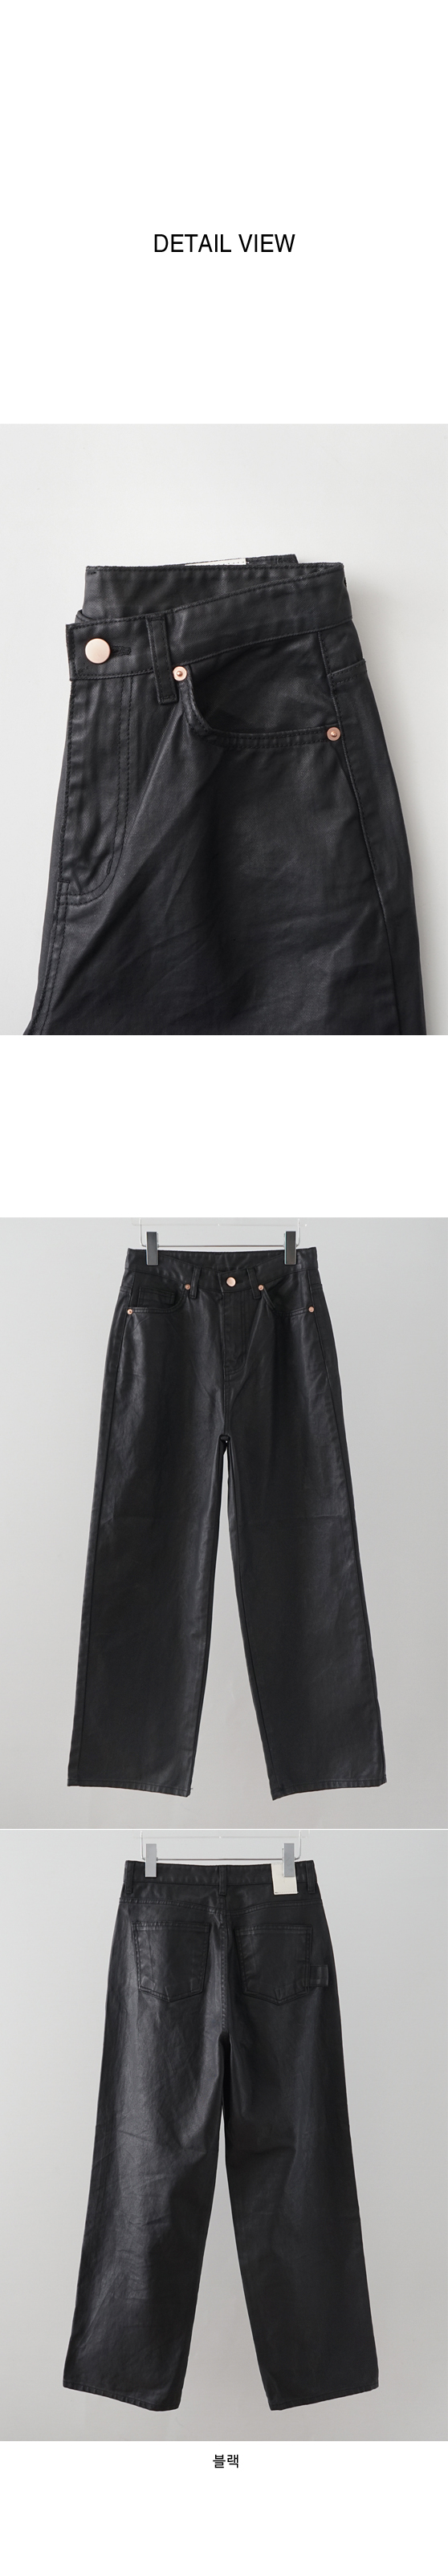 straight leather coating pants